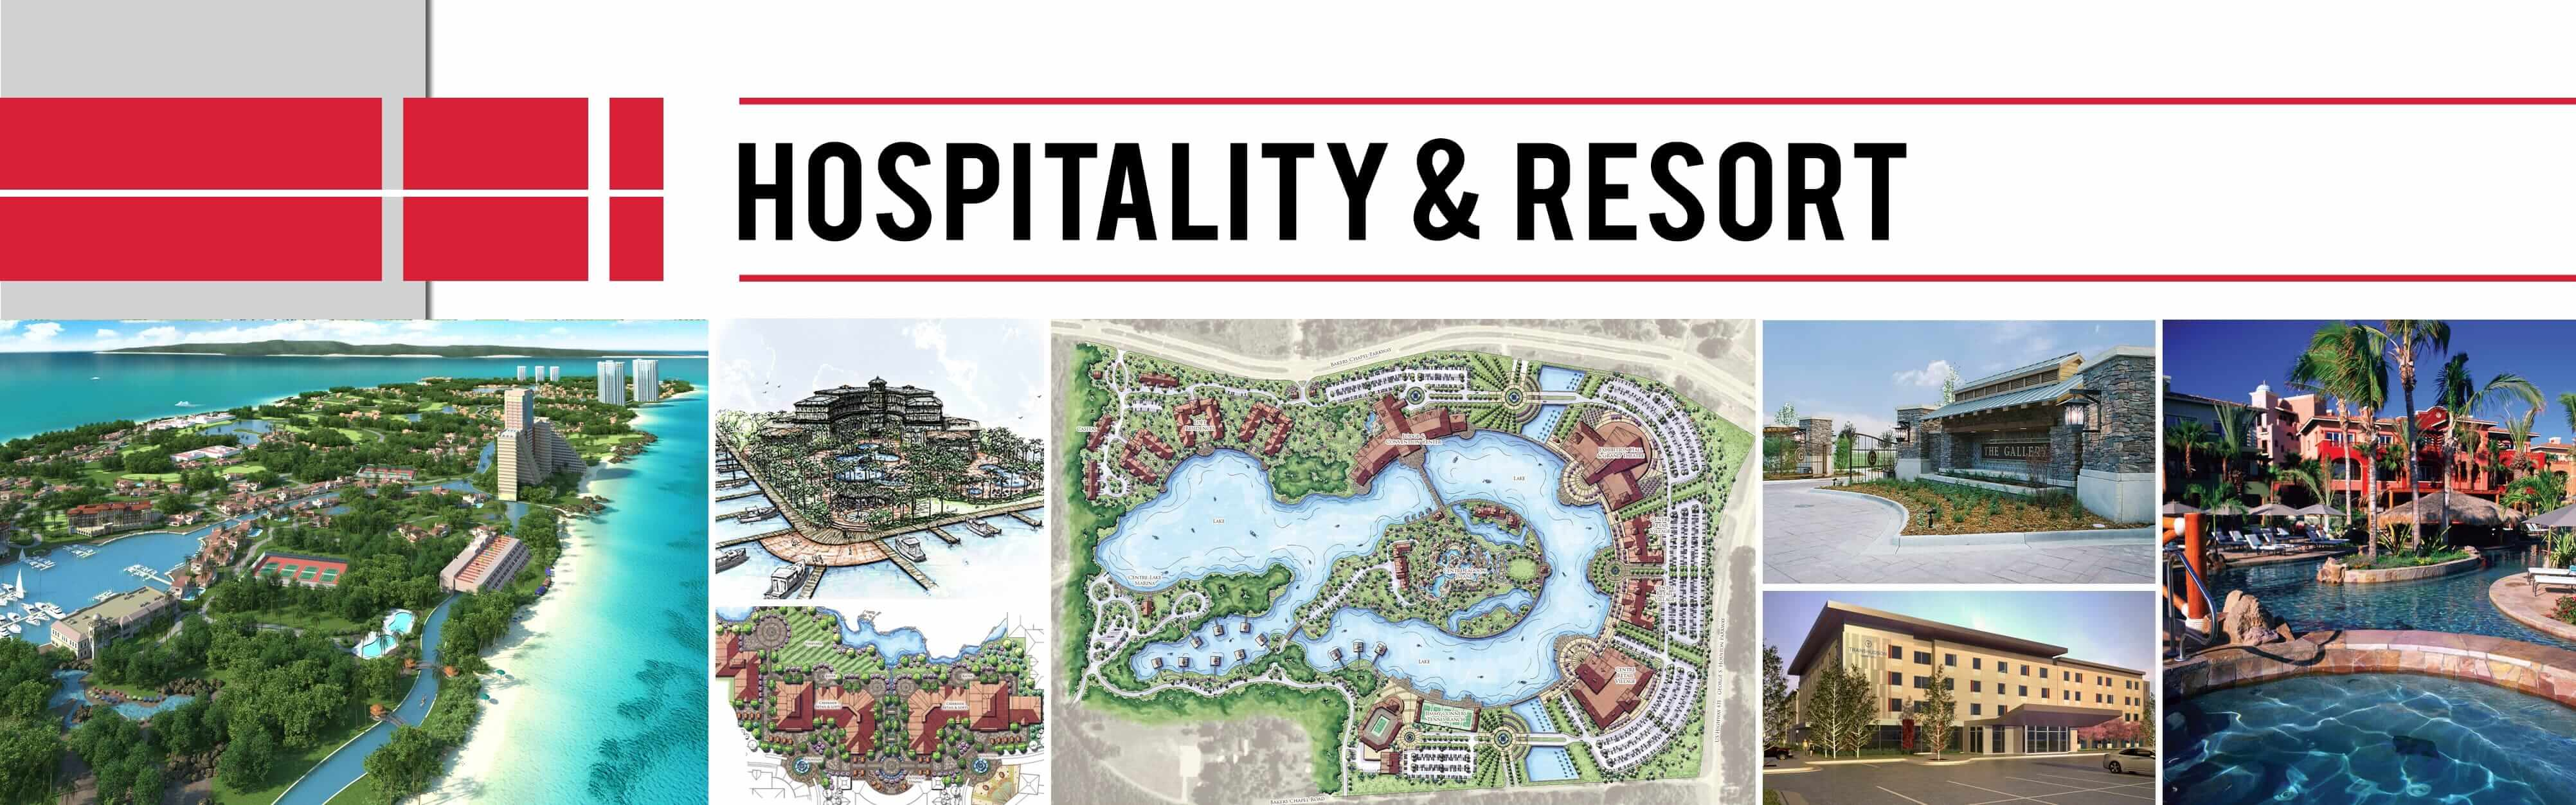 Hospitality and Resort architecture services located in Denver Colorado